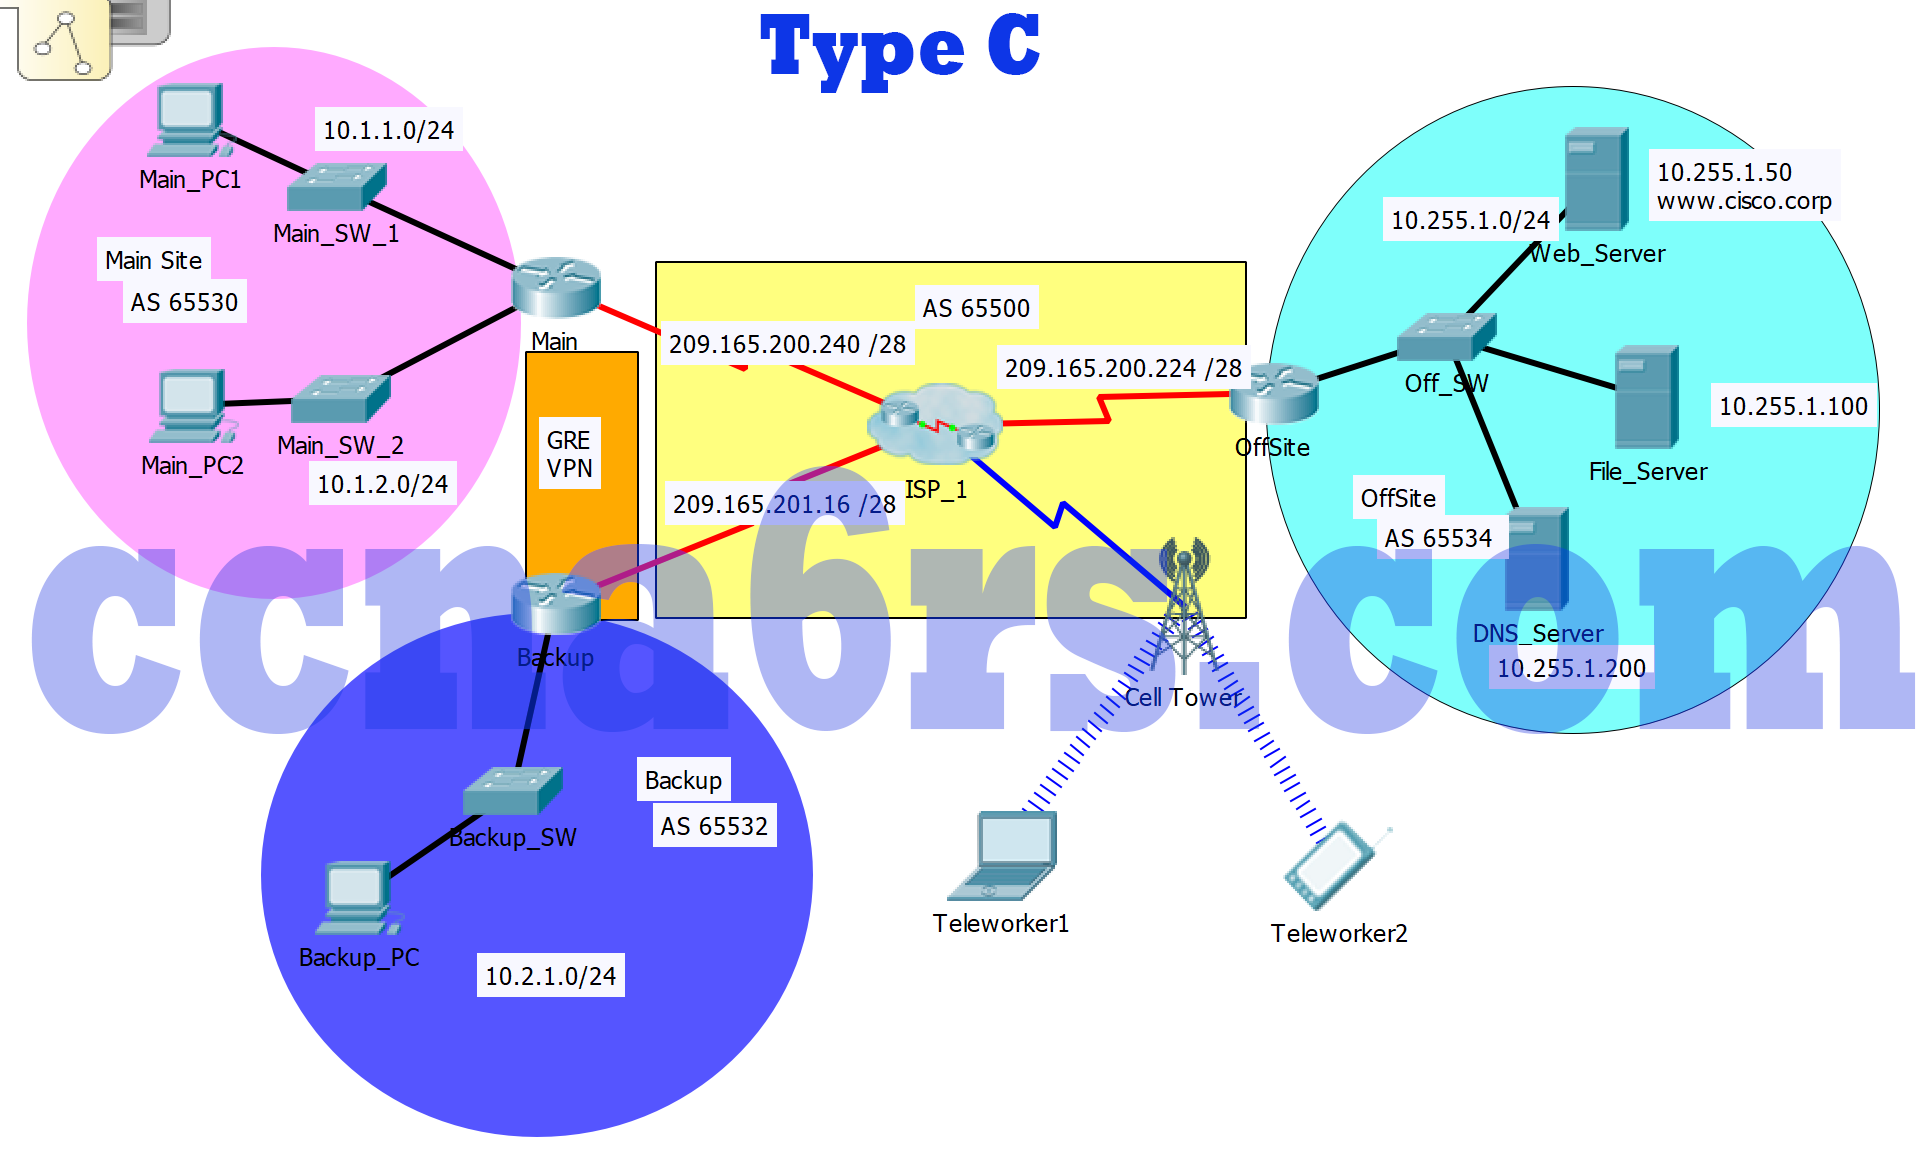 Chapter 3 Packet Tracer Skills Assessment - PT Type C